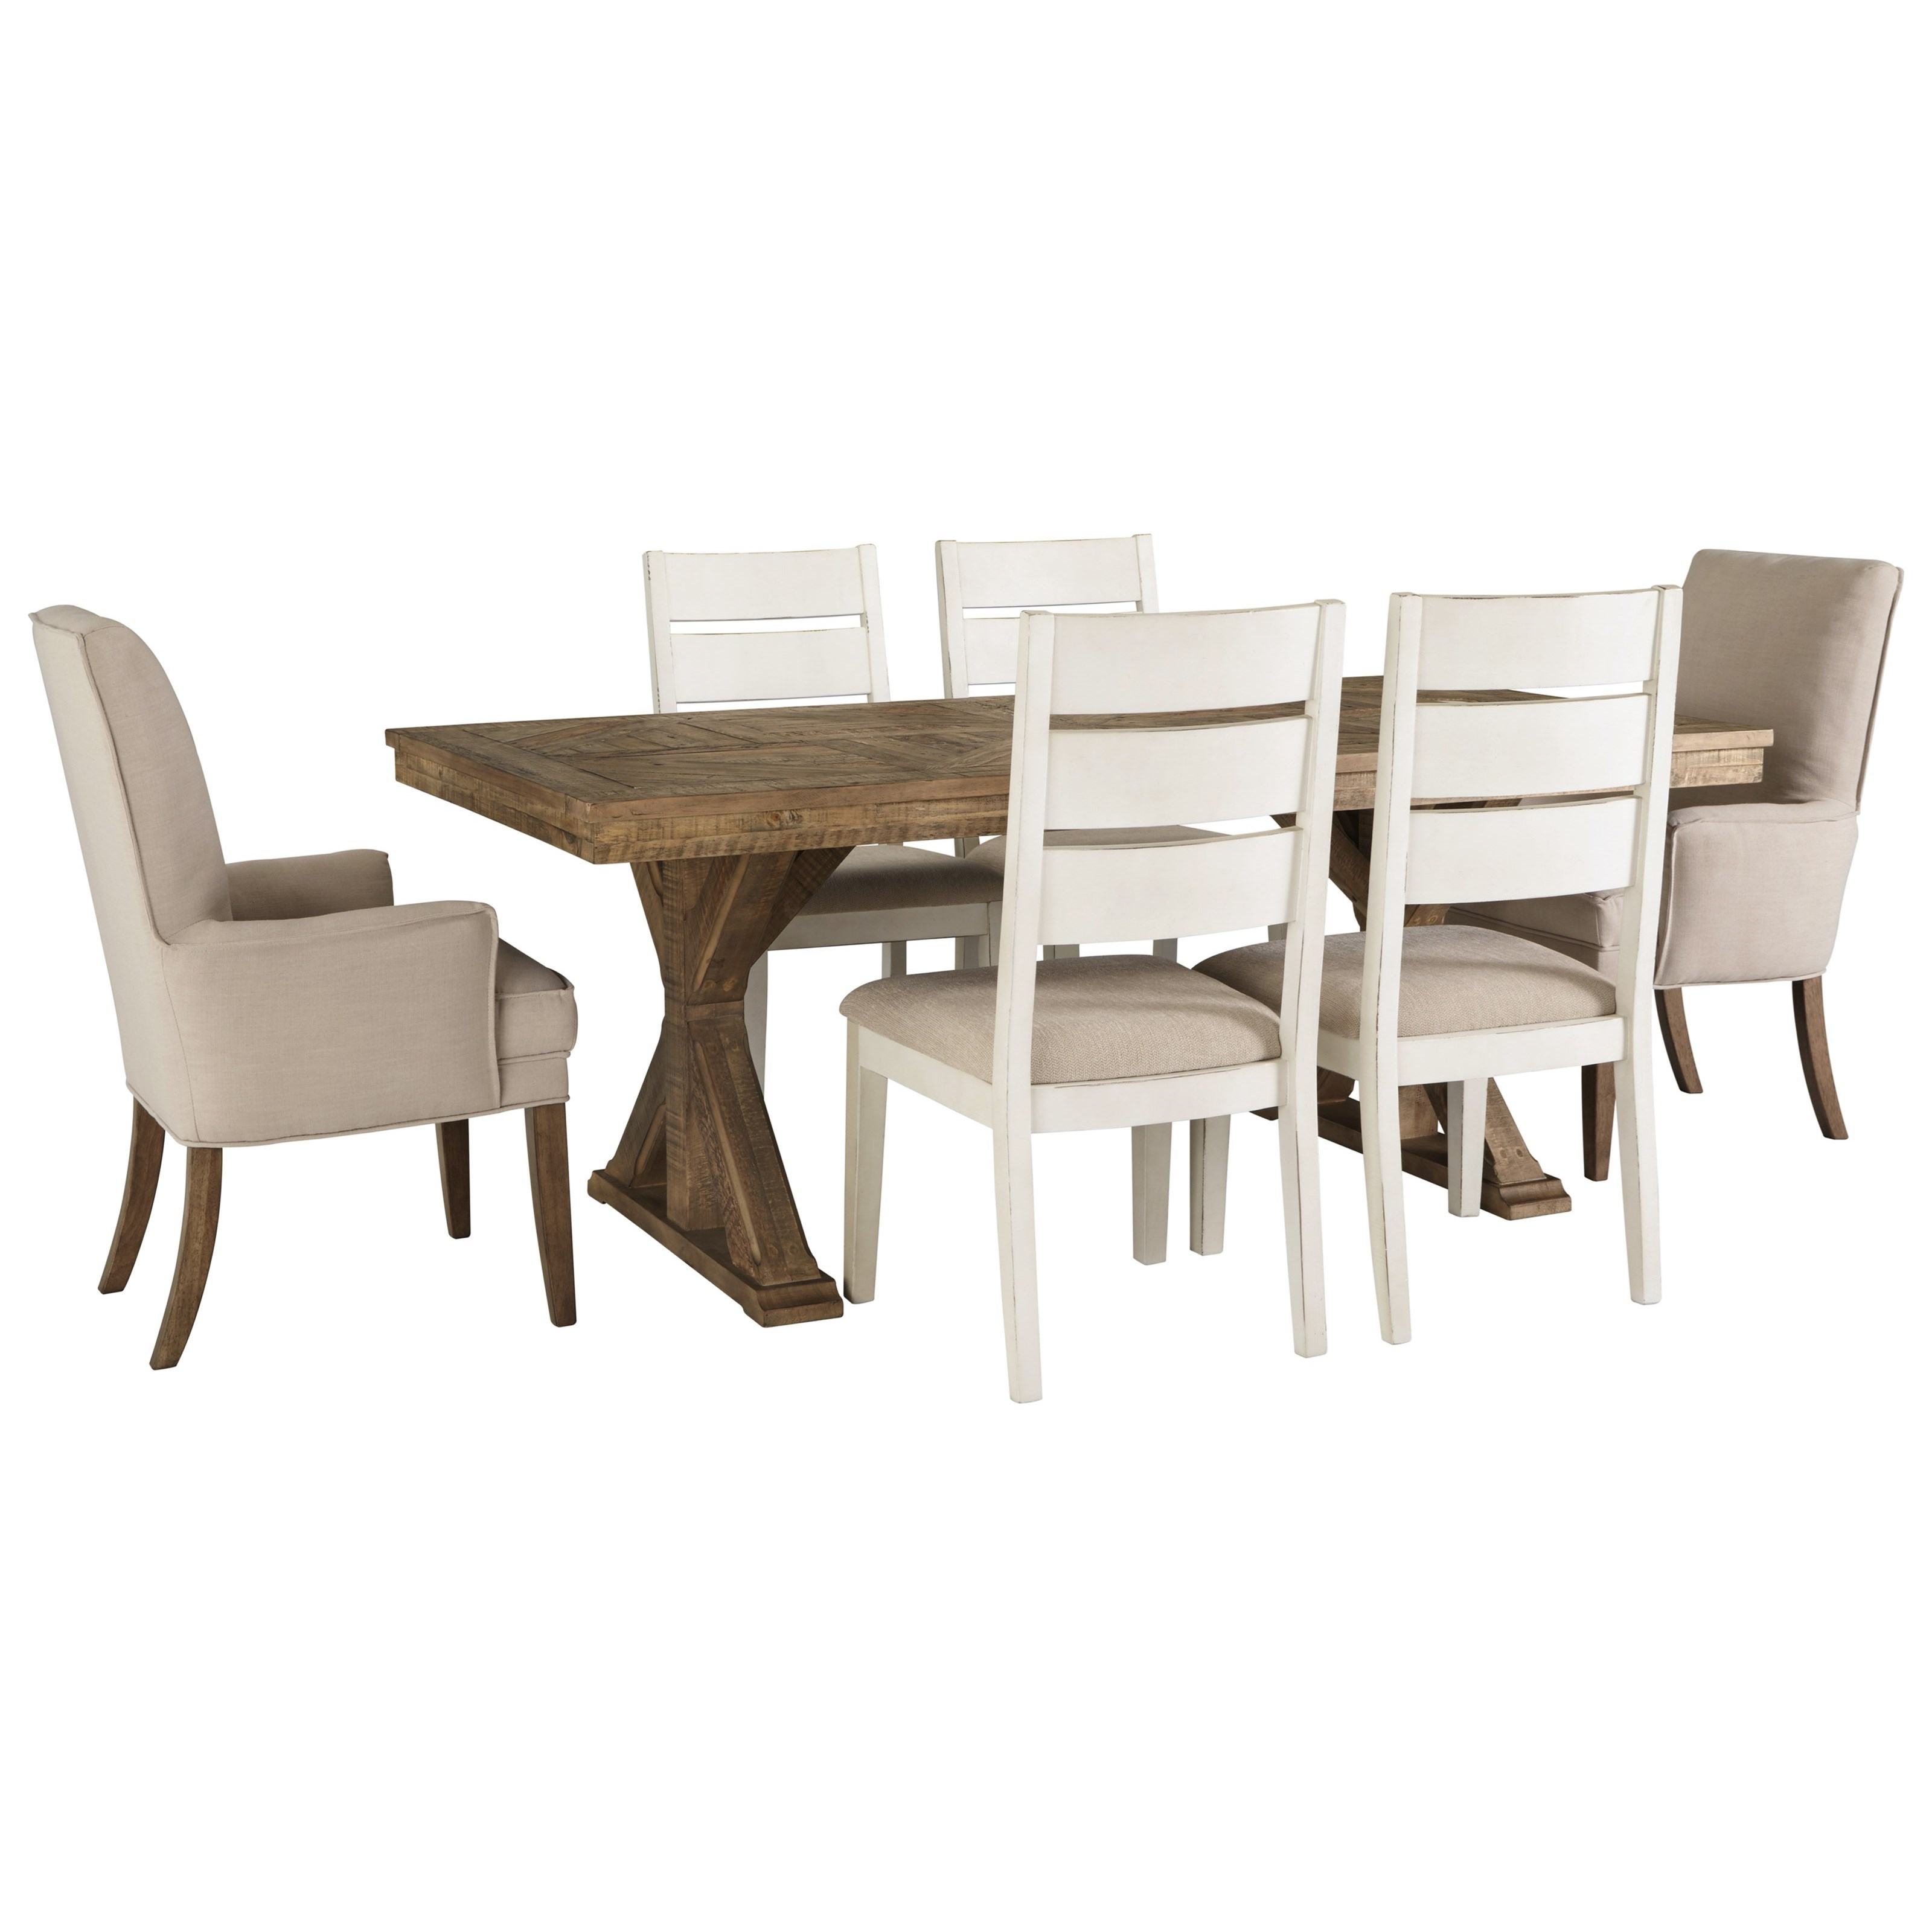 Grindleburg 7 Piece Rectangular Table and Chair Set by Signature Design by Ashley at Lapeer Furniture & Mattress Center